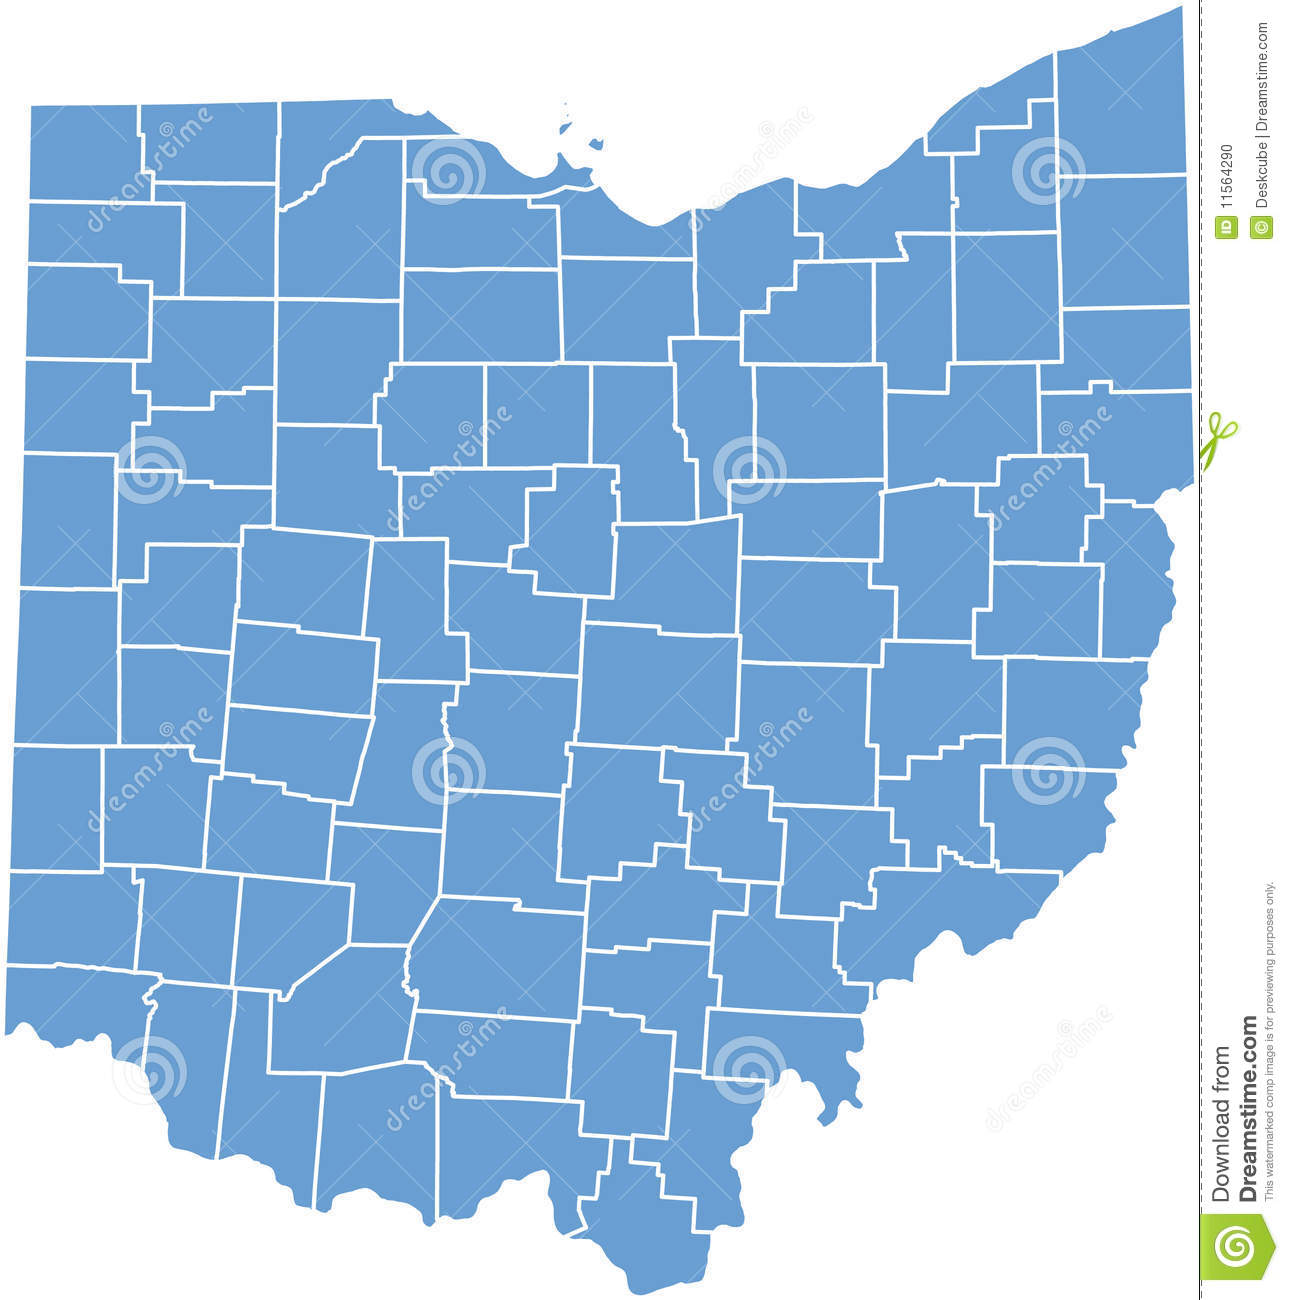 Ohio State map by counties stock illustration. Illustration ...